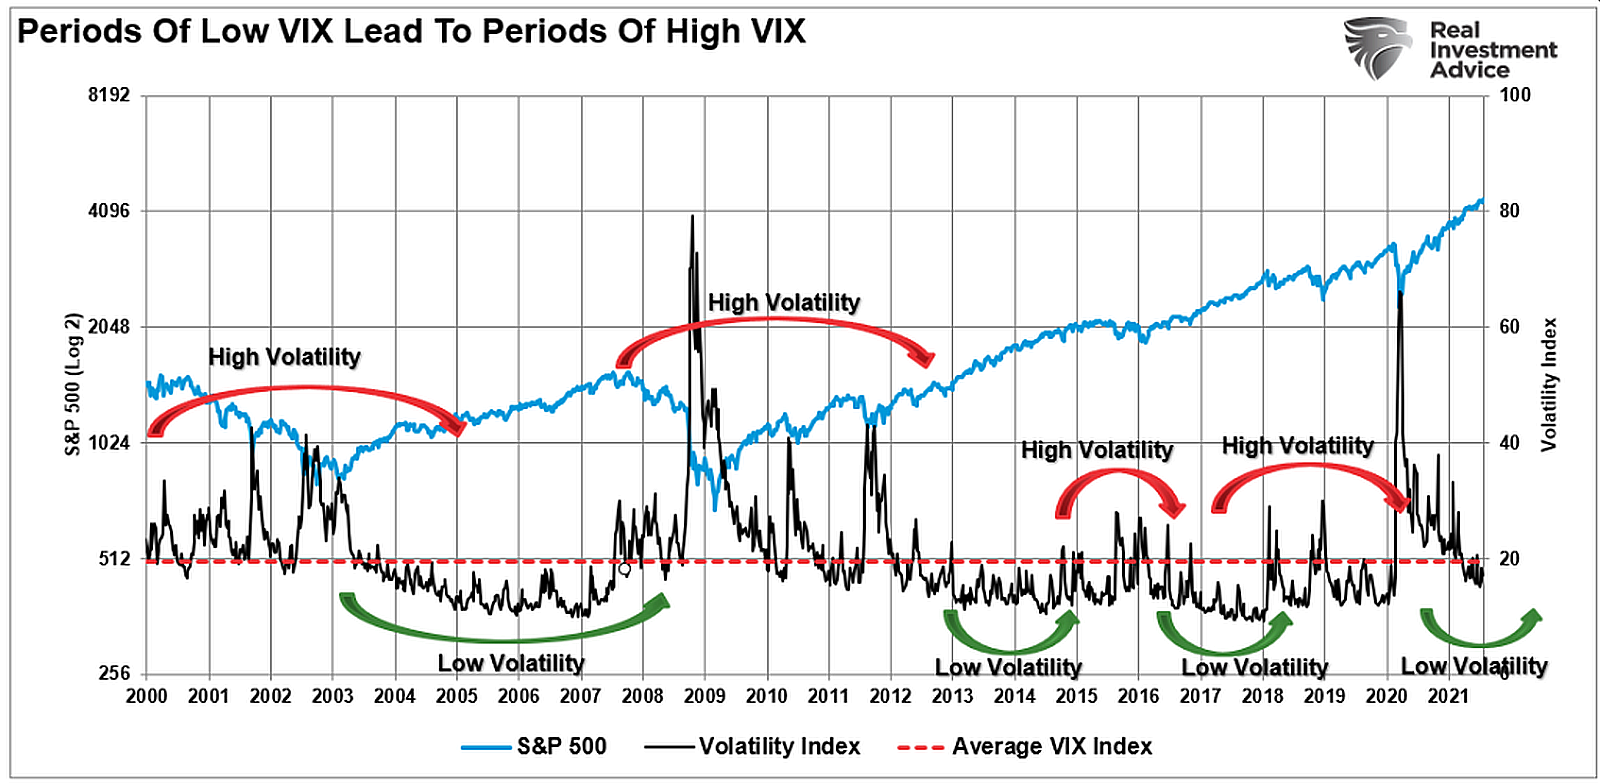 Periods-Of-Low-VIX-Lead-To-Periods-Of-High-VIX